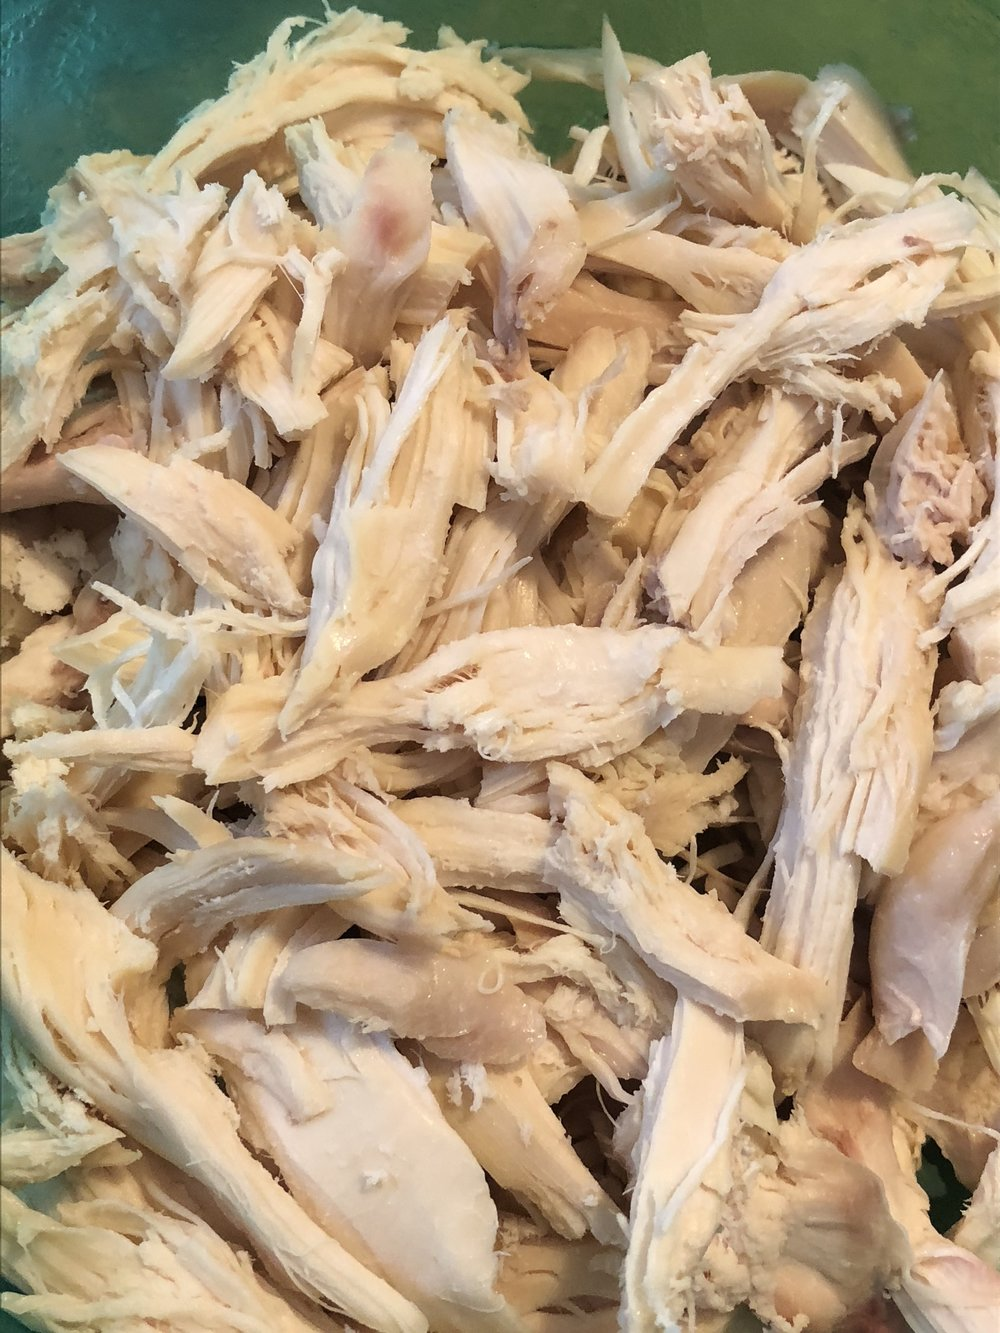 Strain the chicken stock into another pot, being careful to keep all the liquid for the stock of your soup. Remove the chicken from the pot and when it is cool, clean the chicken into shredded bite sized pieces.  Set aside